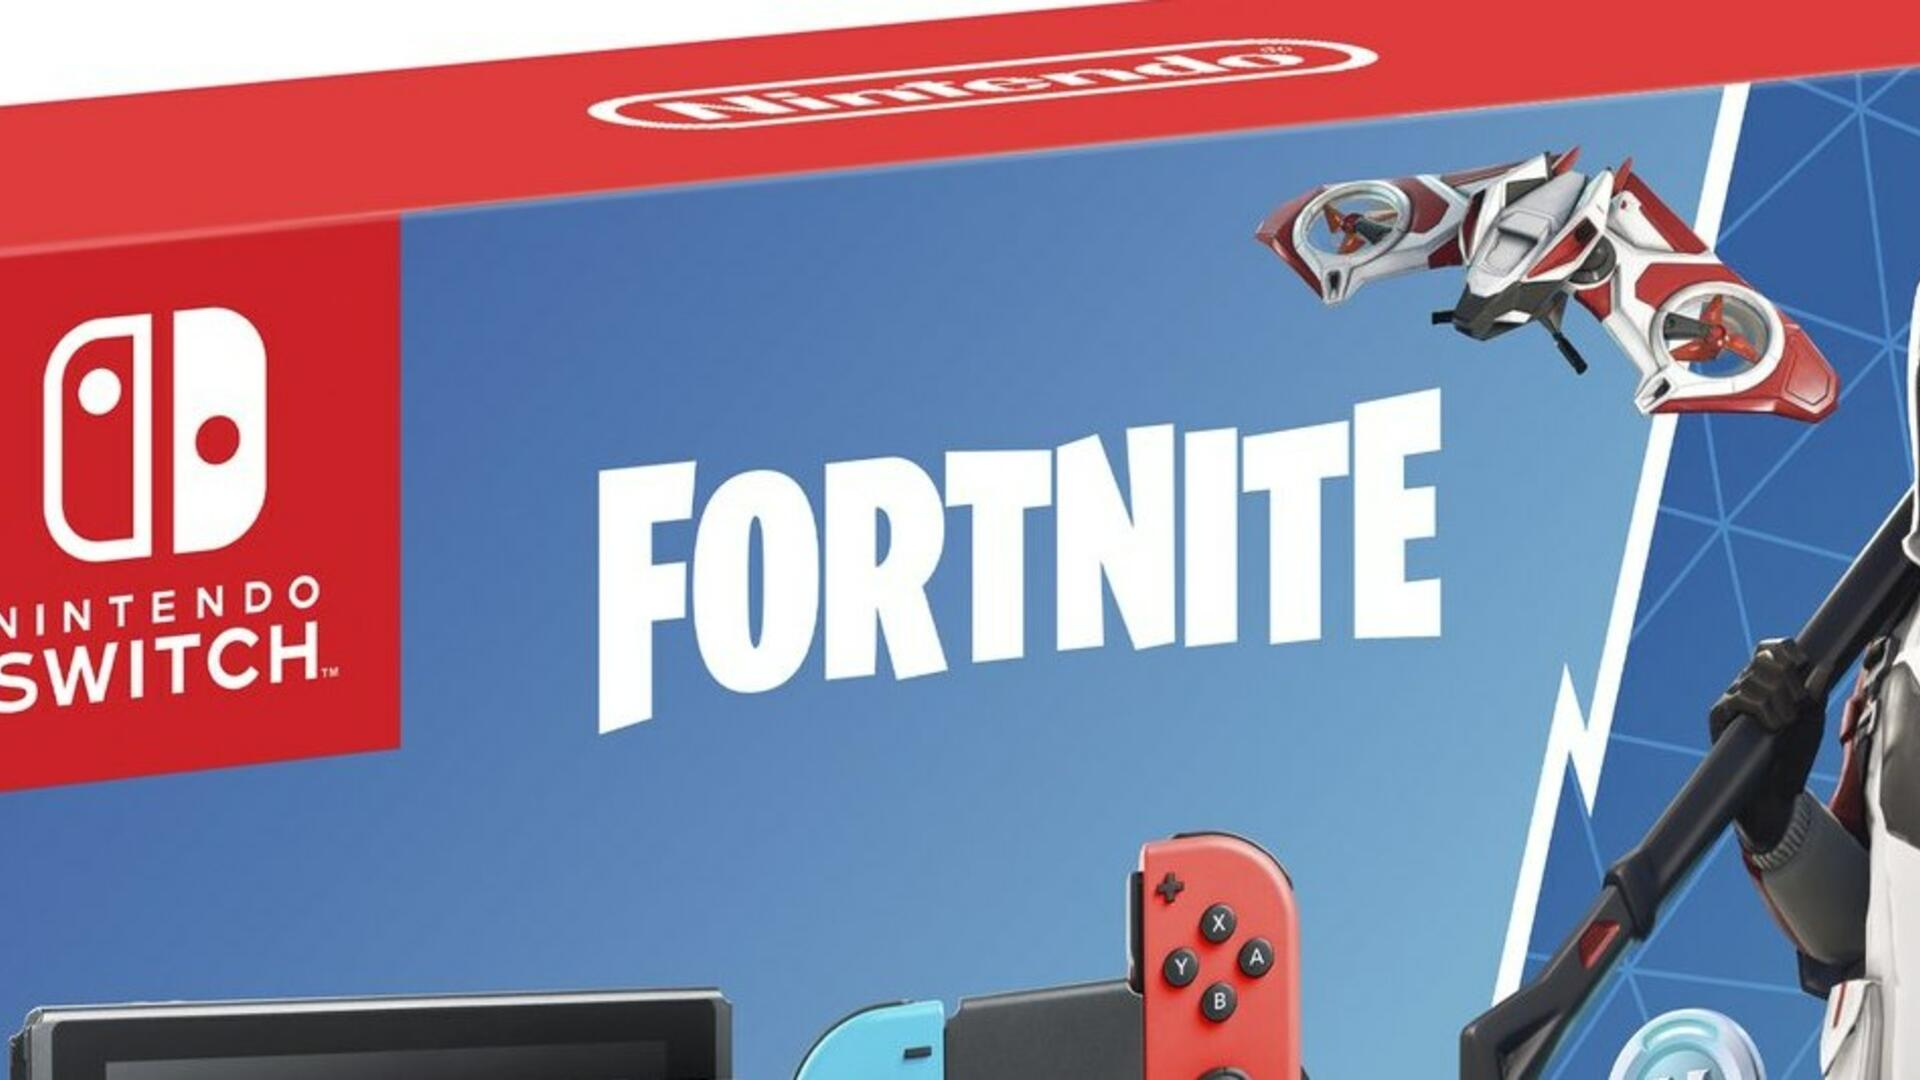 There's a New Fortnite Switch Bundle, With Exclusive In-Game Gear